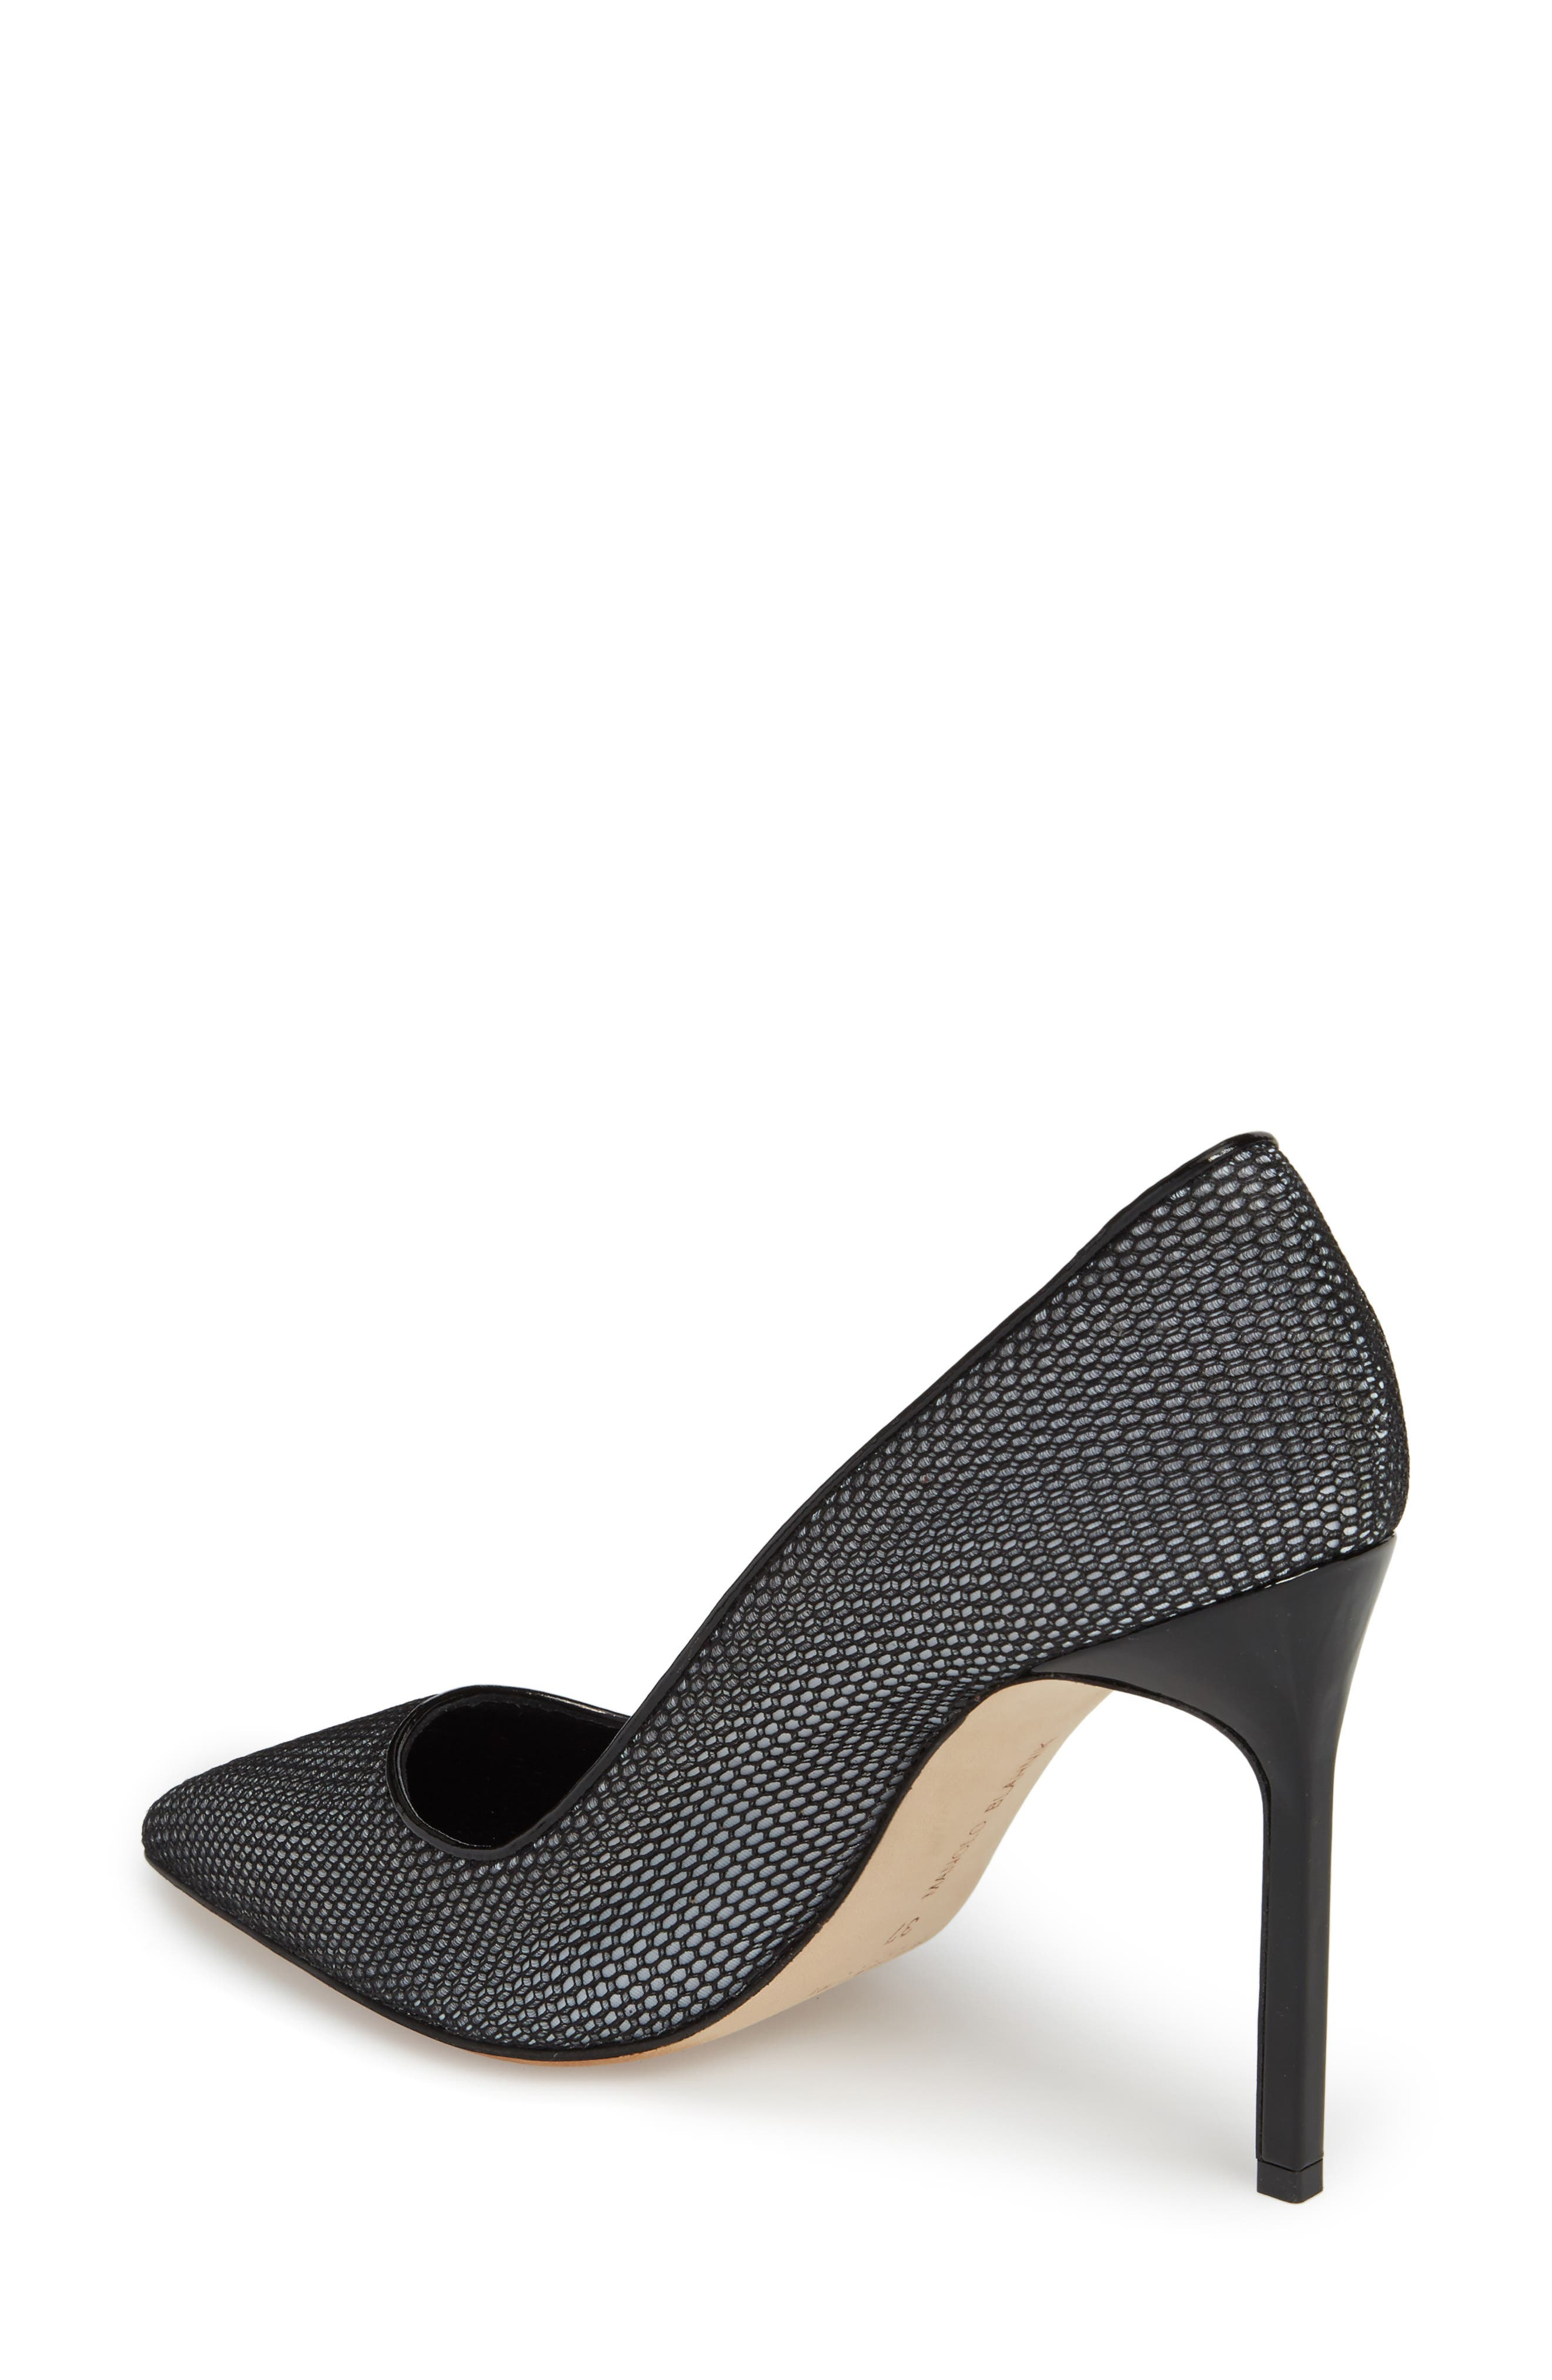 BB Pointy Toe Pump,                             Alternate thumbnail 2, color,                             020